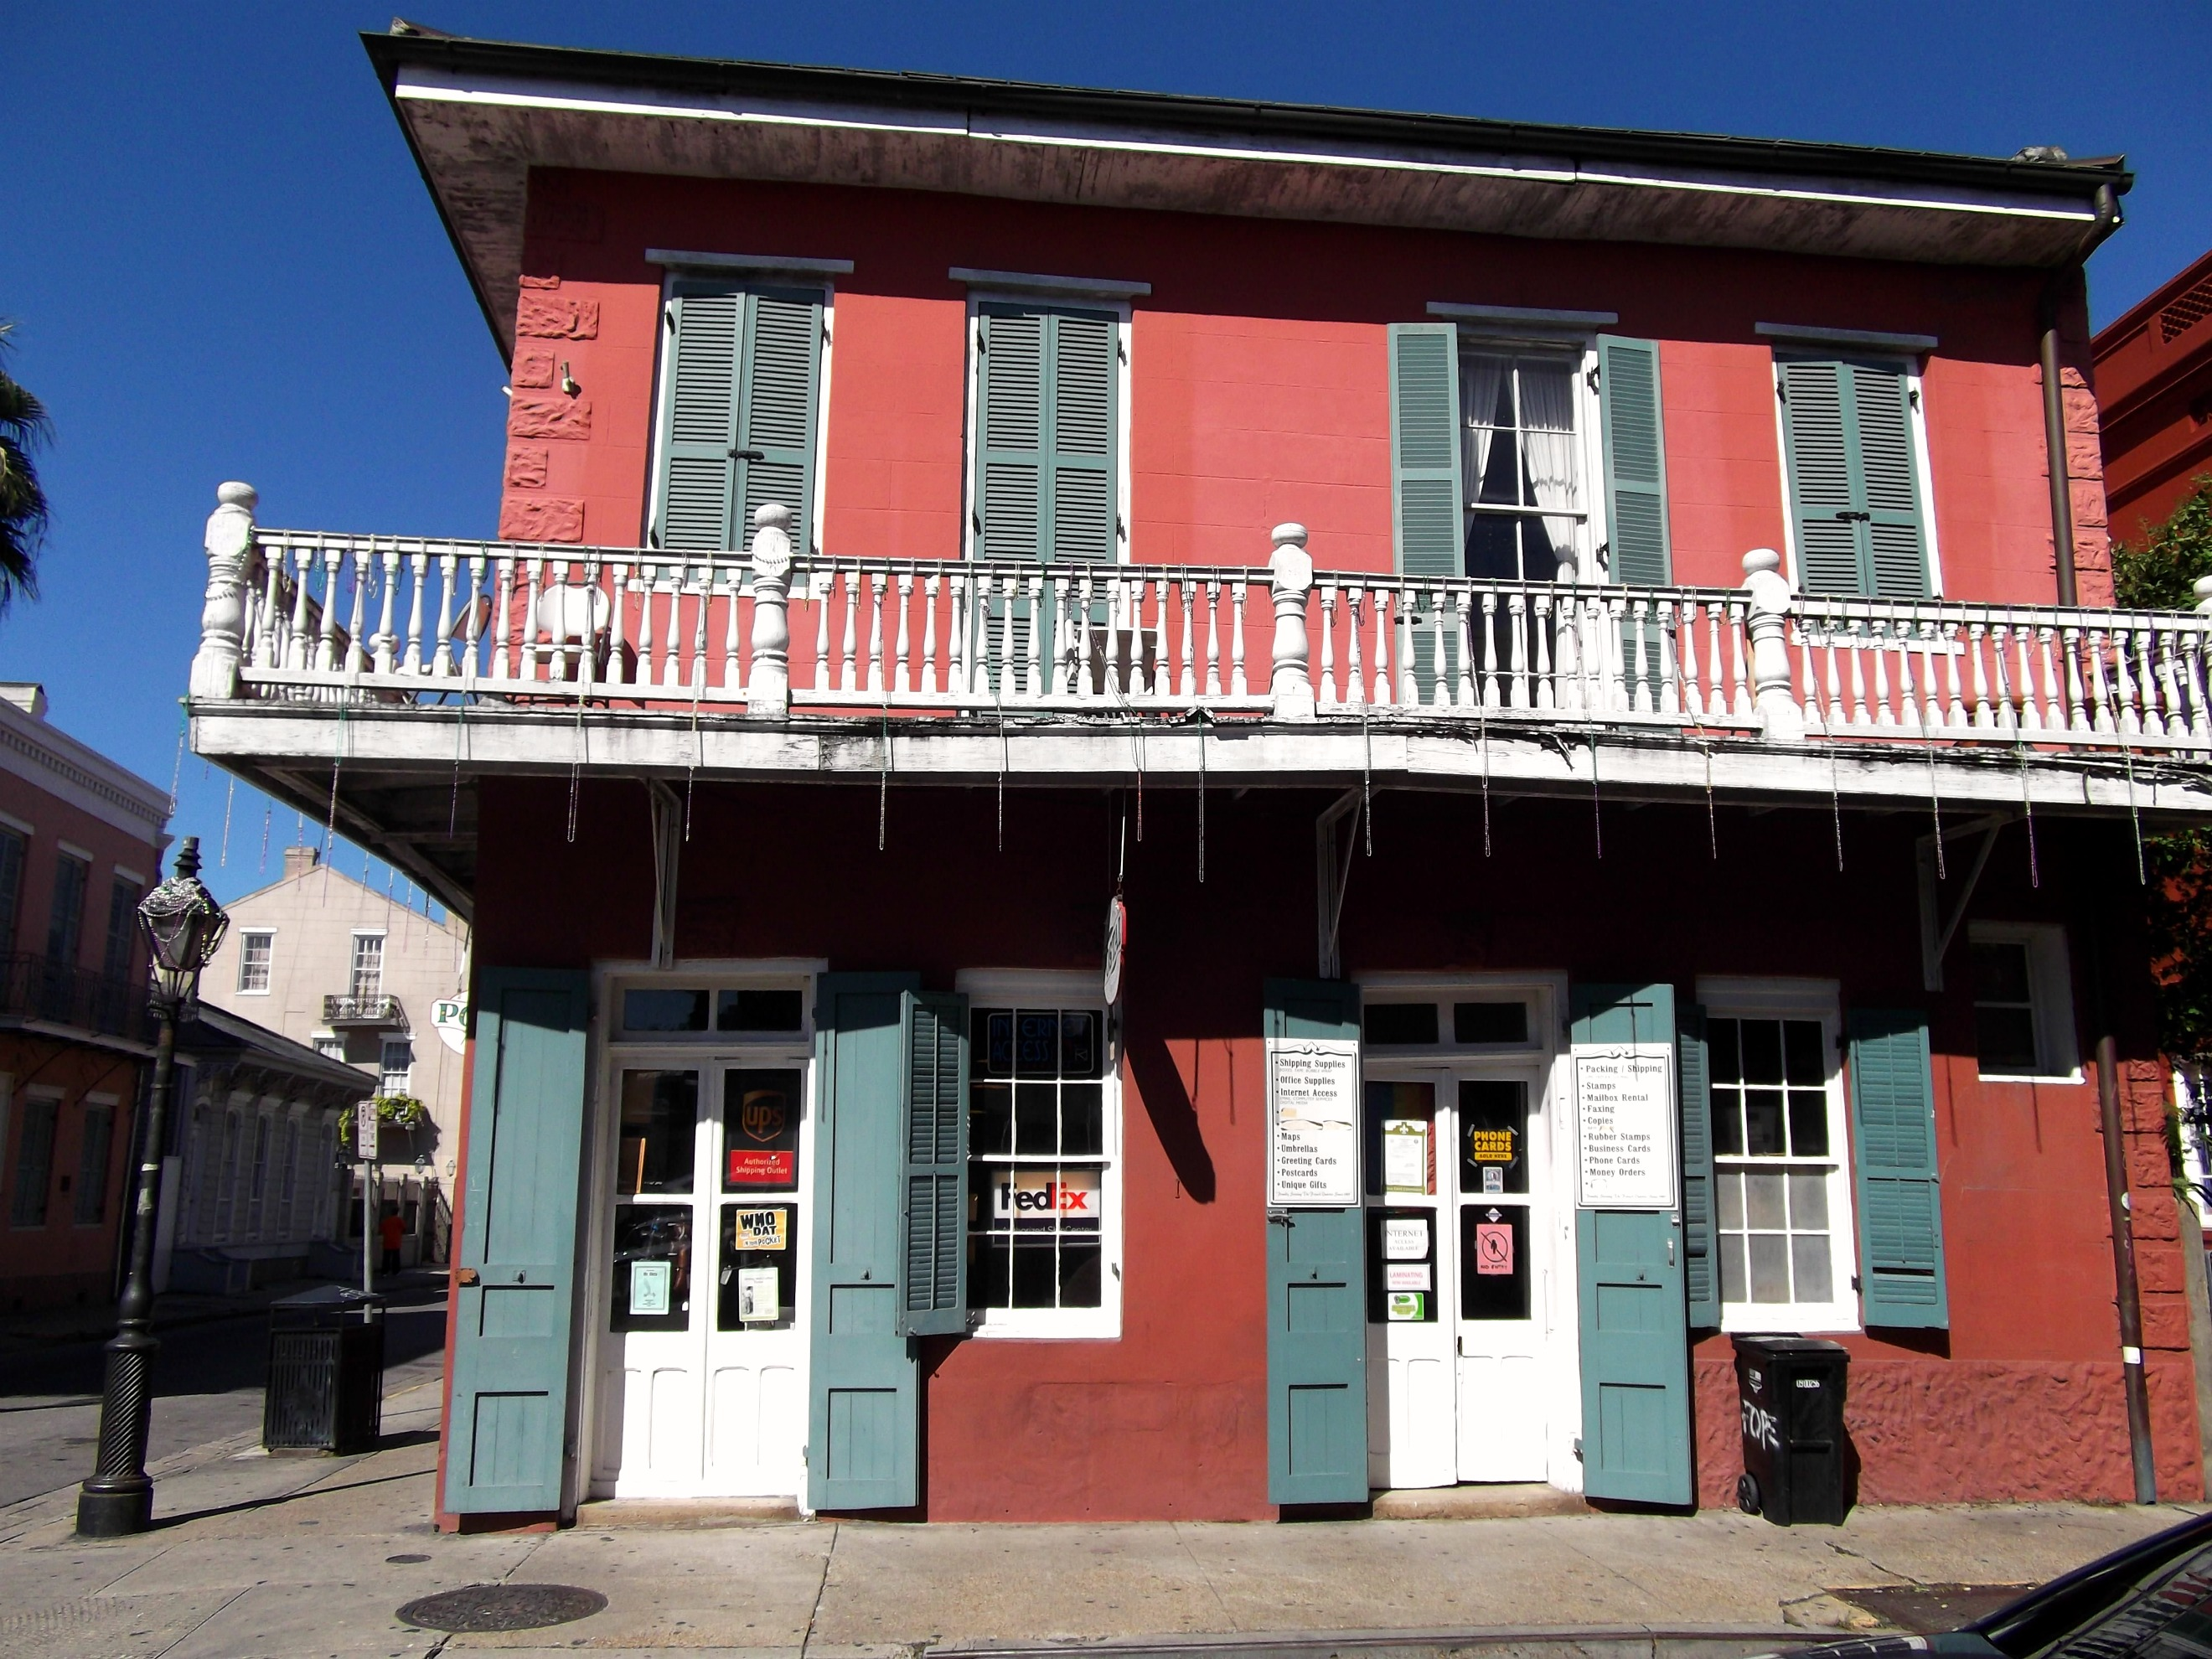 Home Office Urlaubsanspruch New Orleans The Beauty Of French Quarter Big Cities